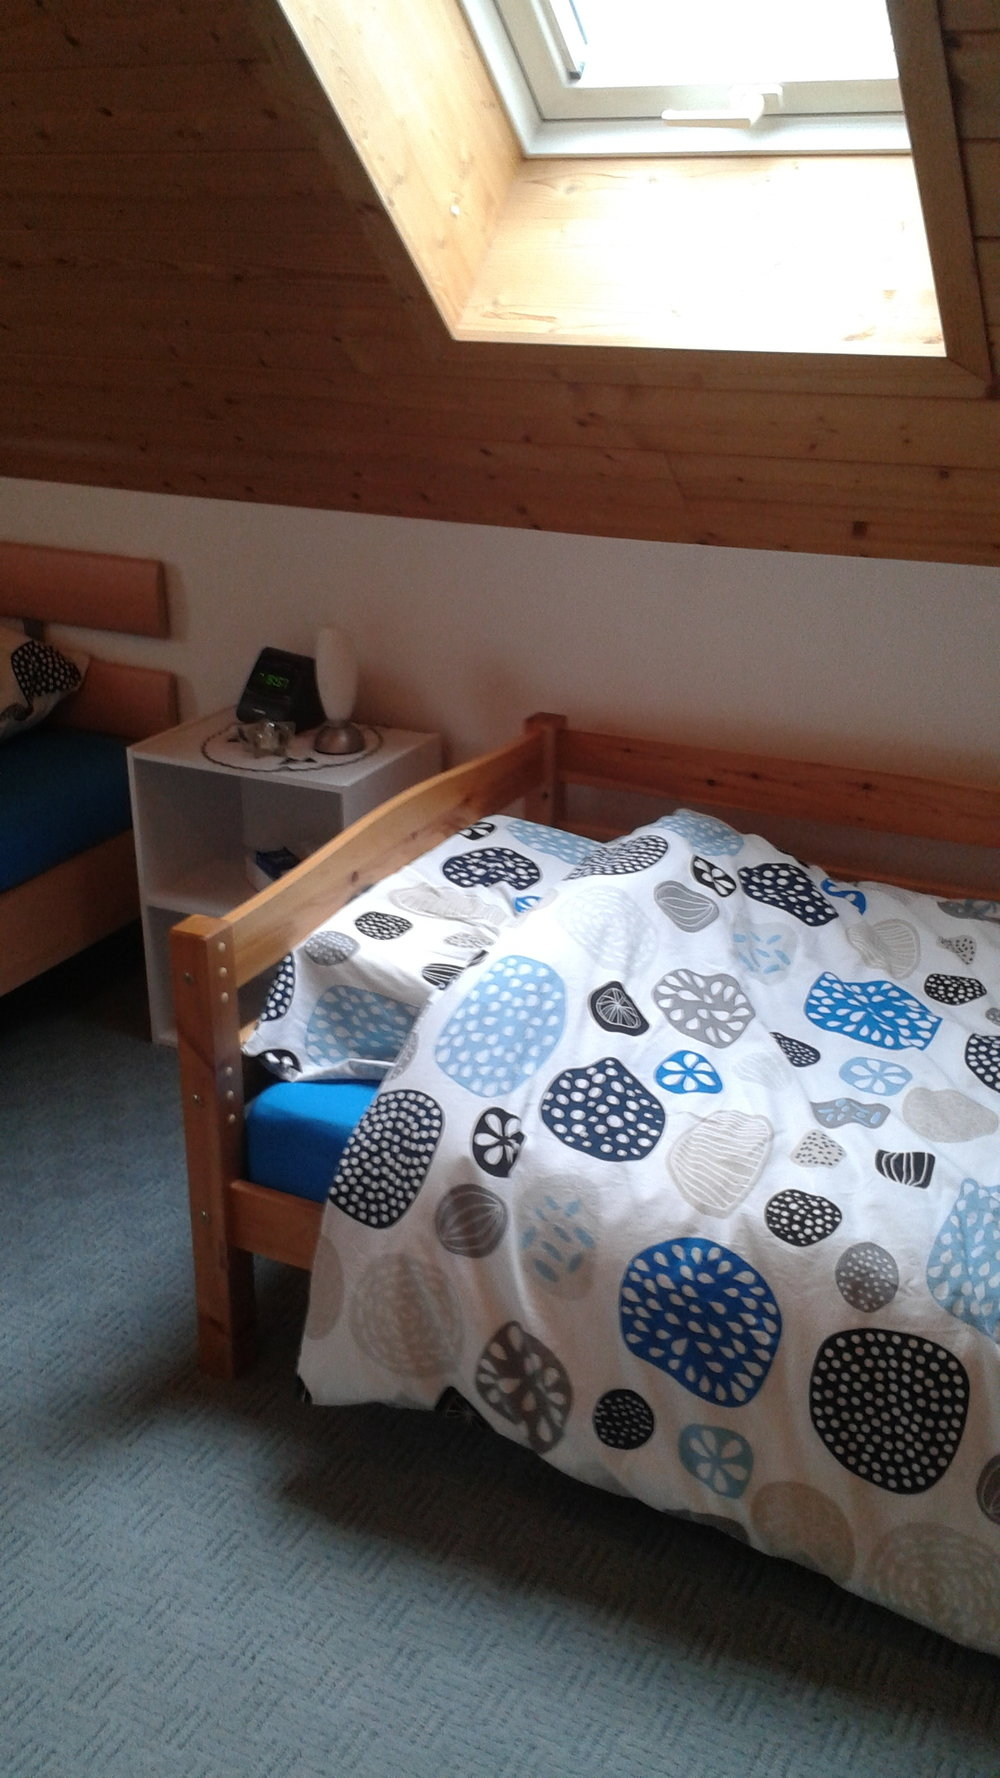 I haven't slept there often, but this snug room epitomizes rest for me.